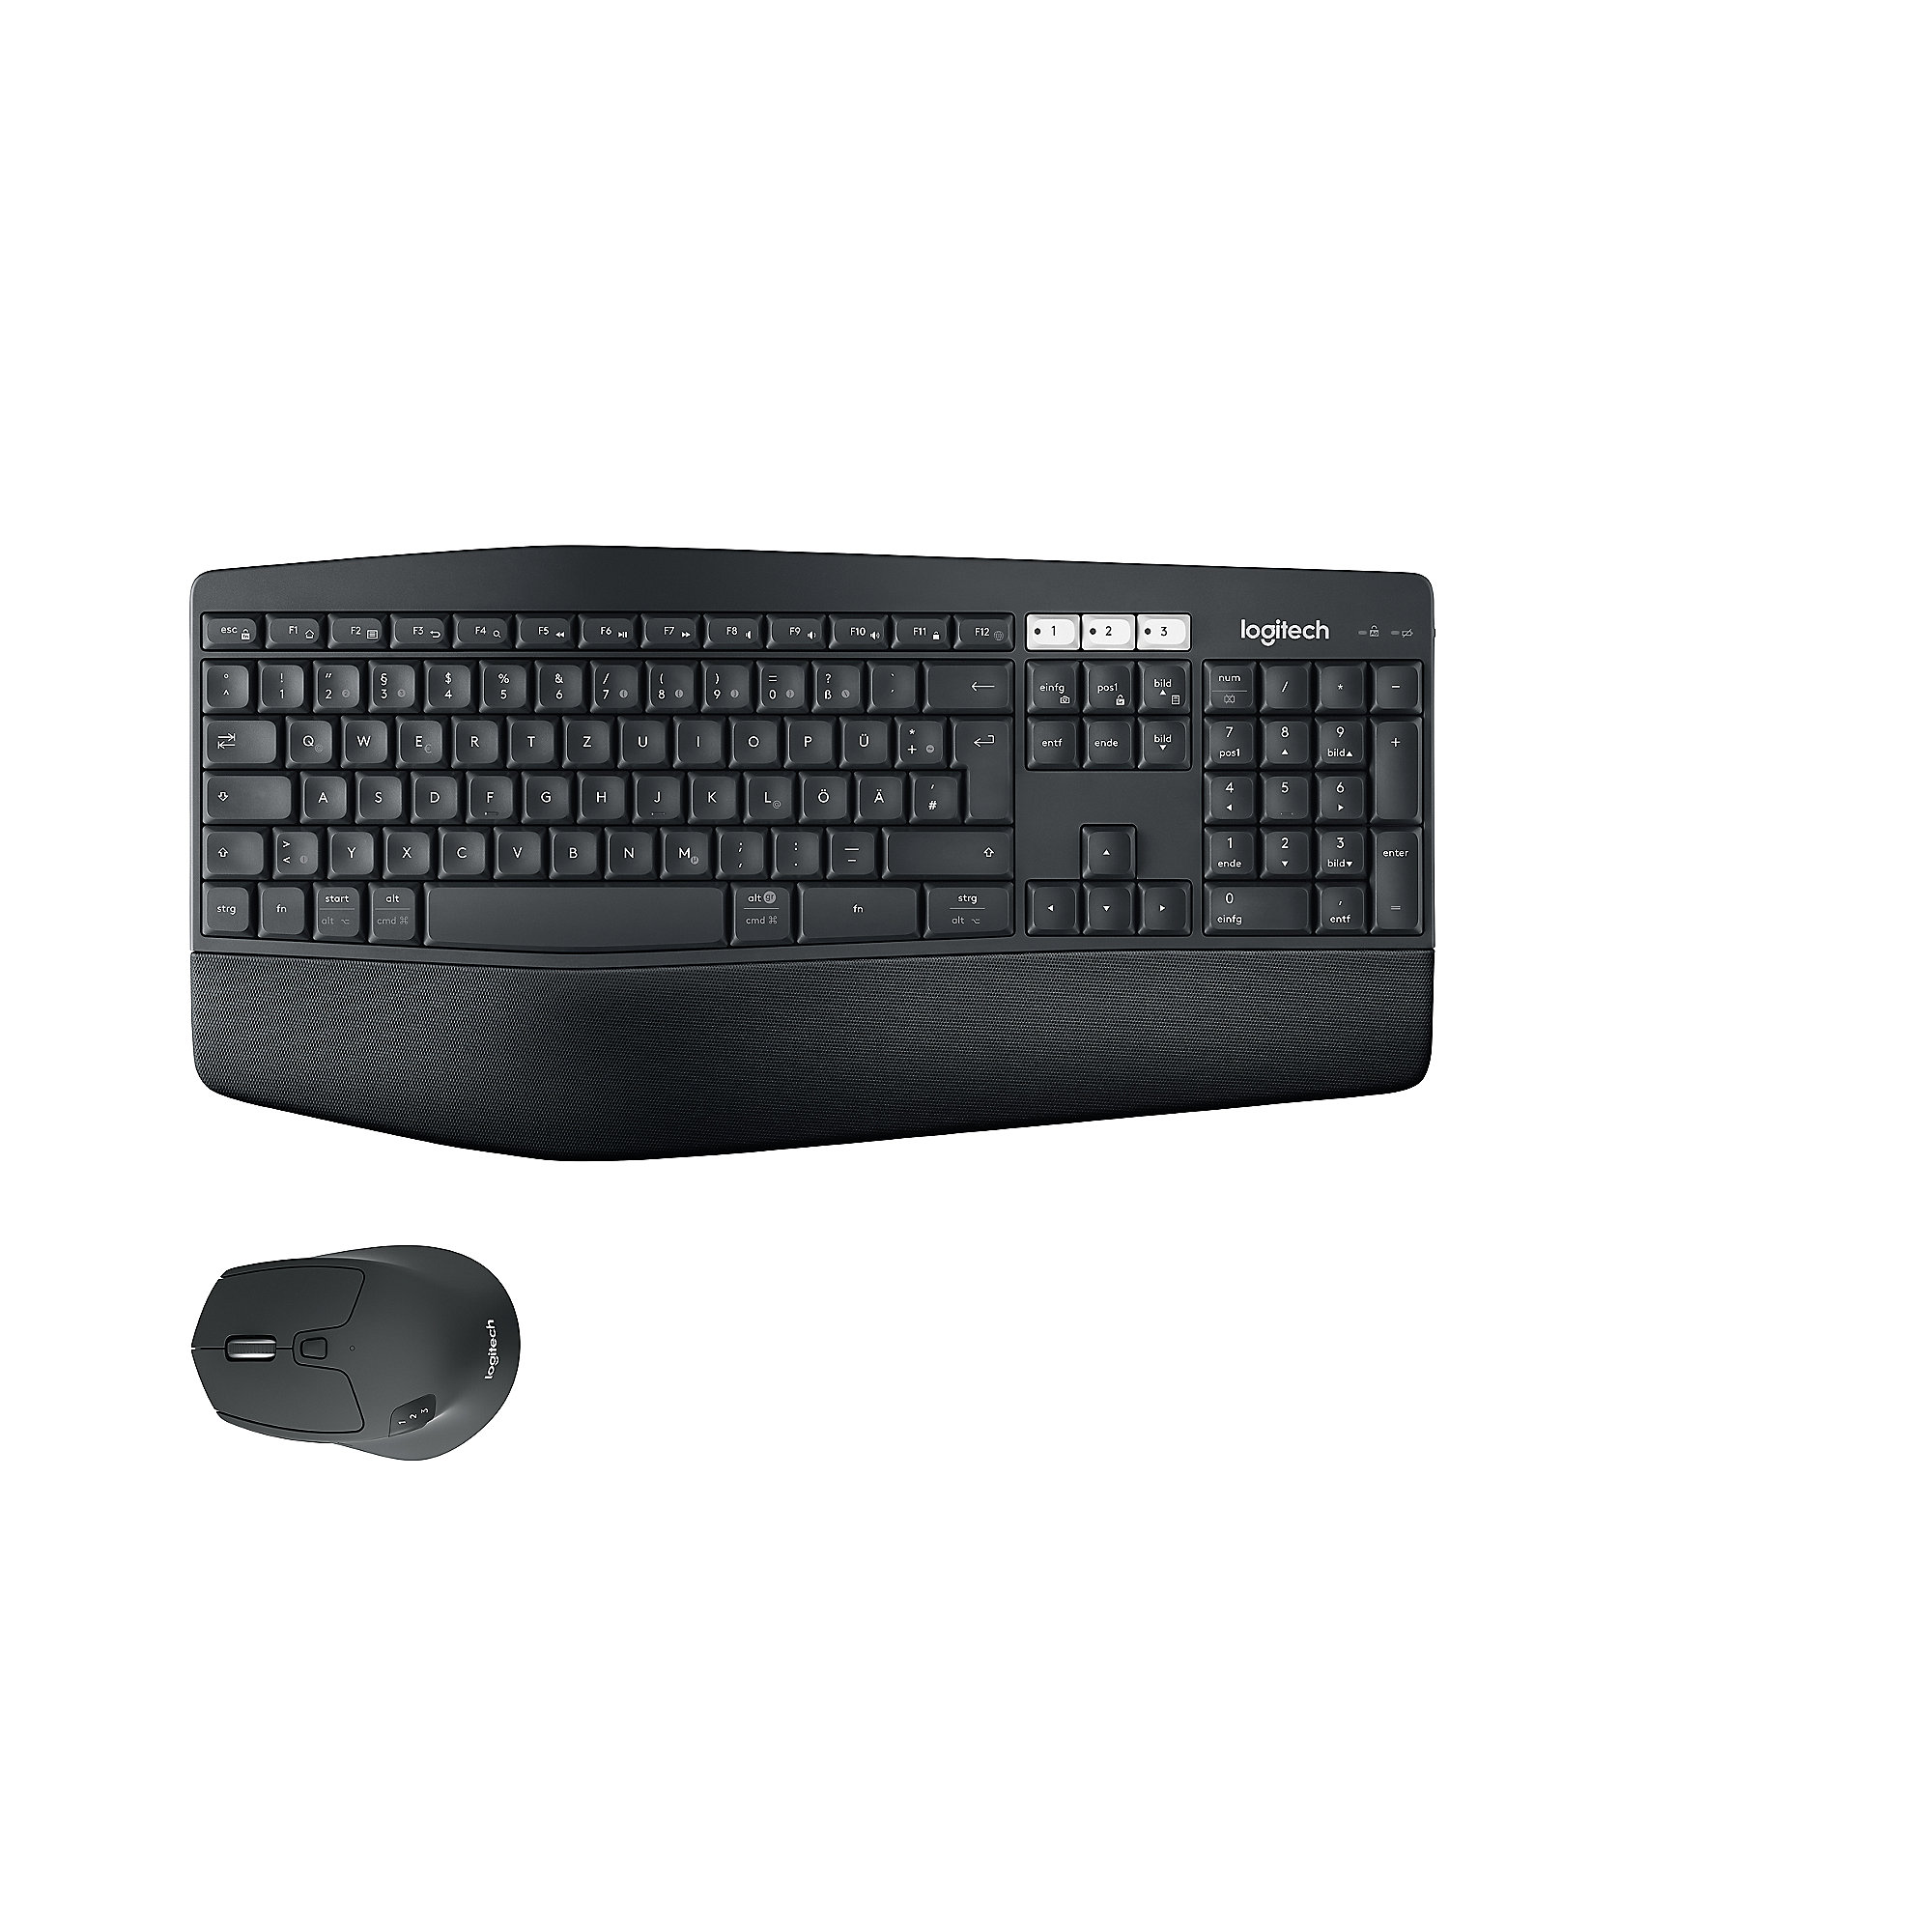 Logitech MK850 Wireless Desktop Maus-Tastaturkombination